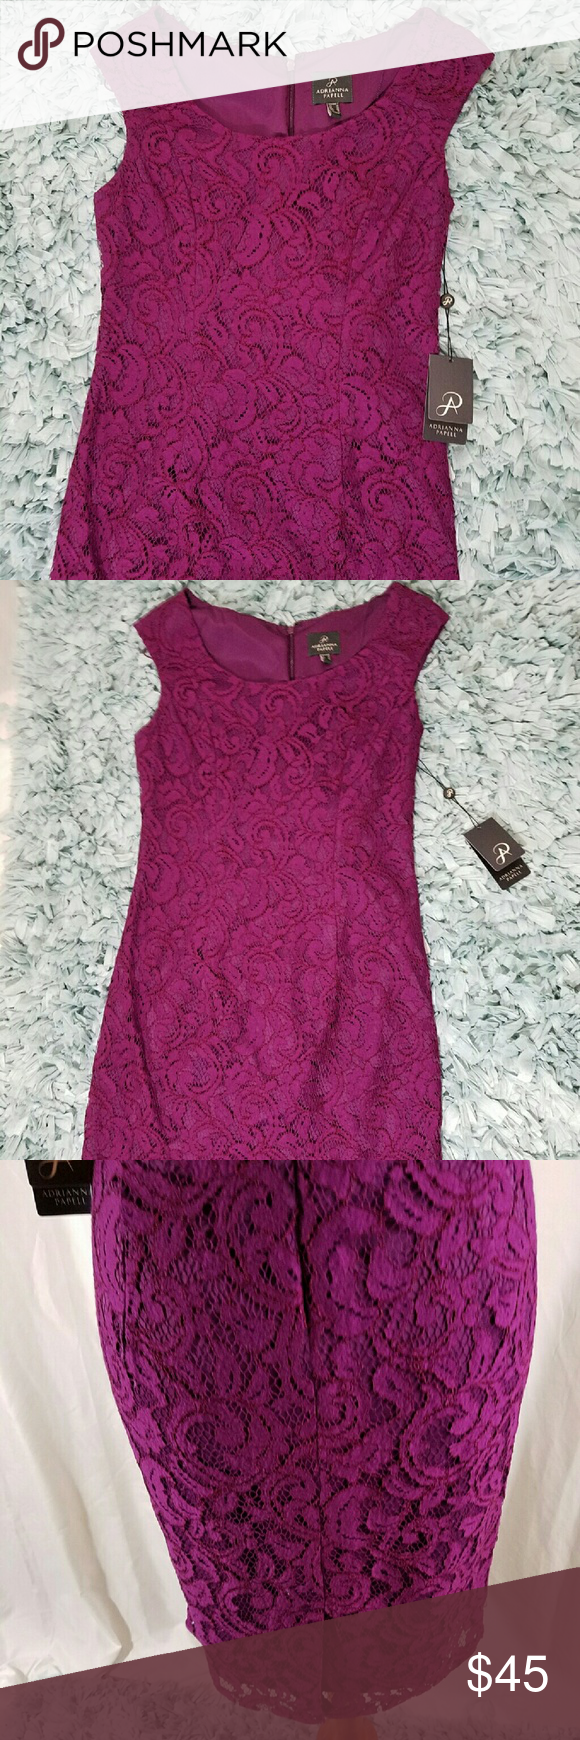 NWT Adrianna papell size 6 purple dress NWT